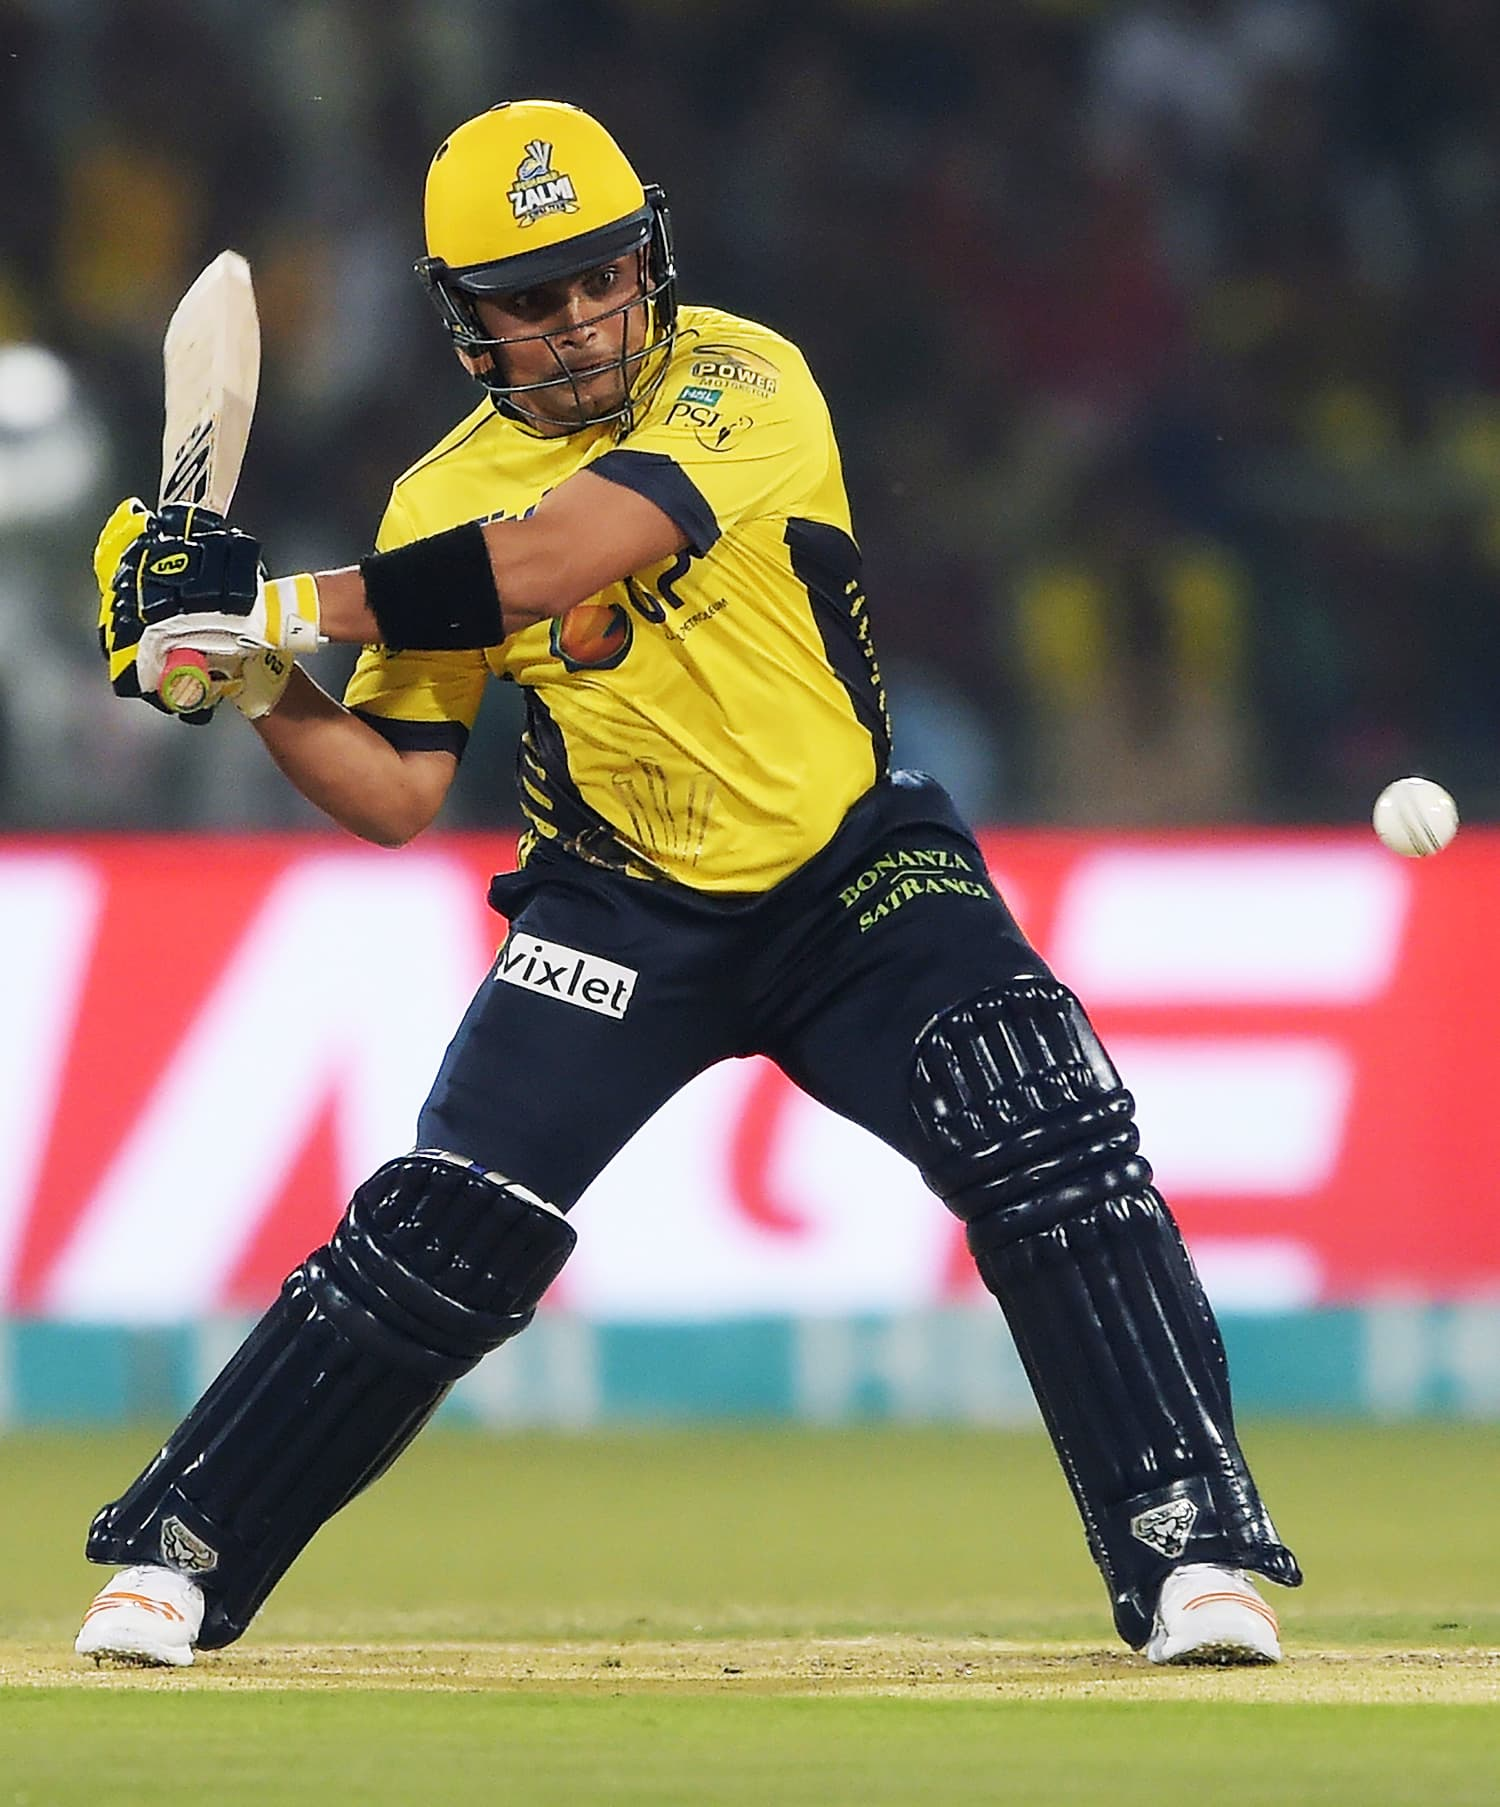 Kamran Akmal of Peshawar Zalmi plays a shot during the final cricket match of the PSL. ─ AFP